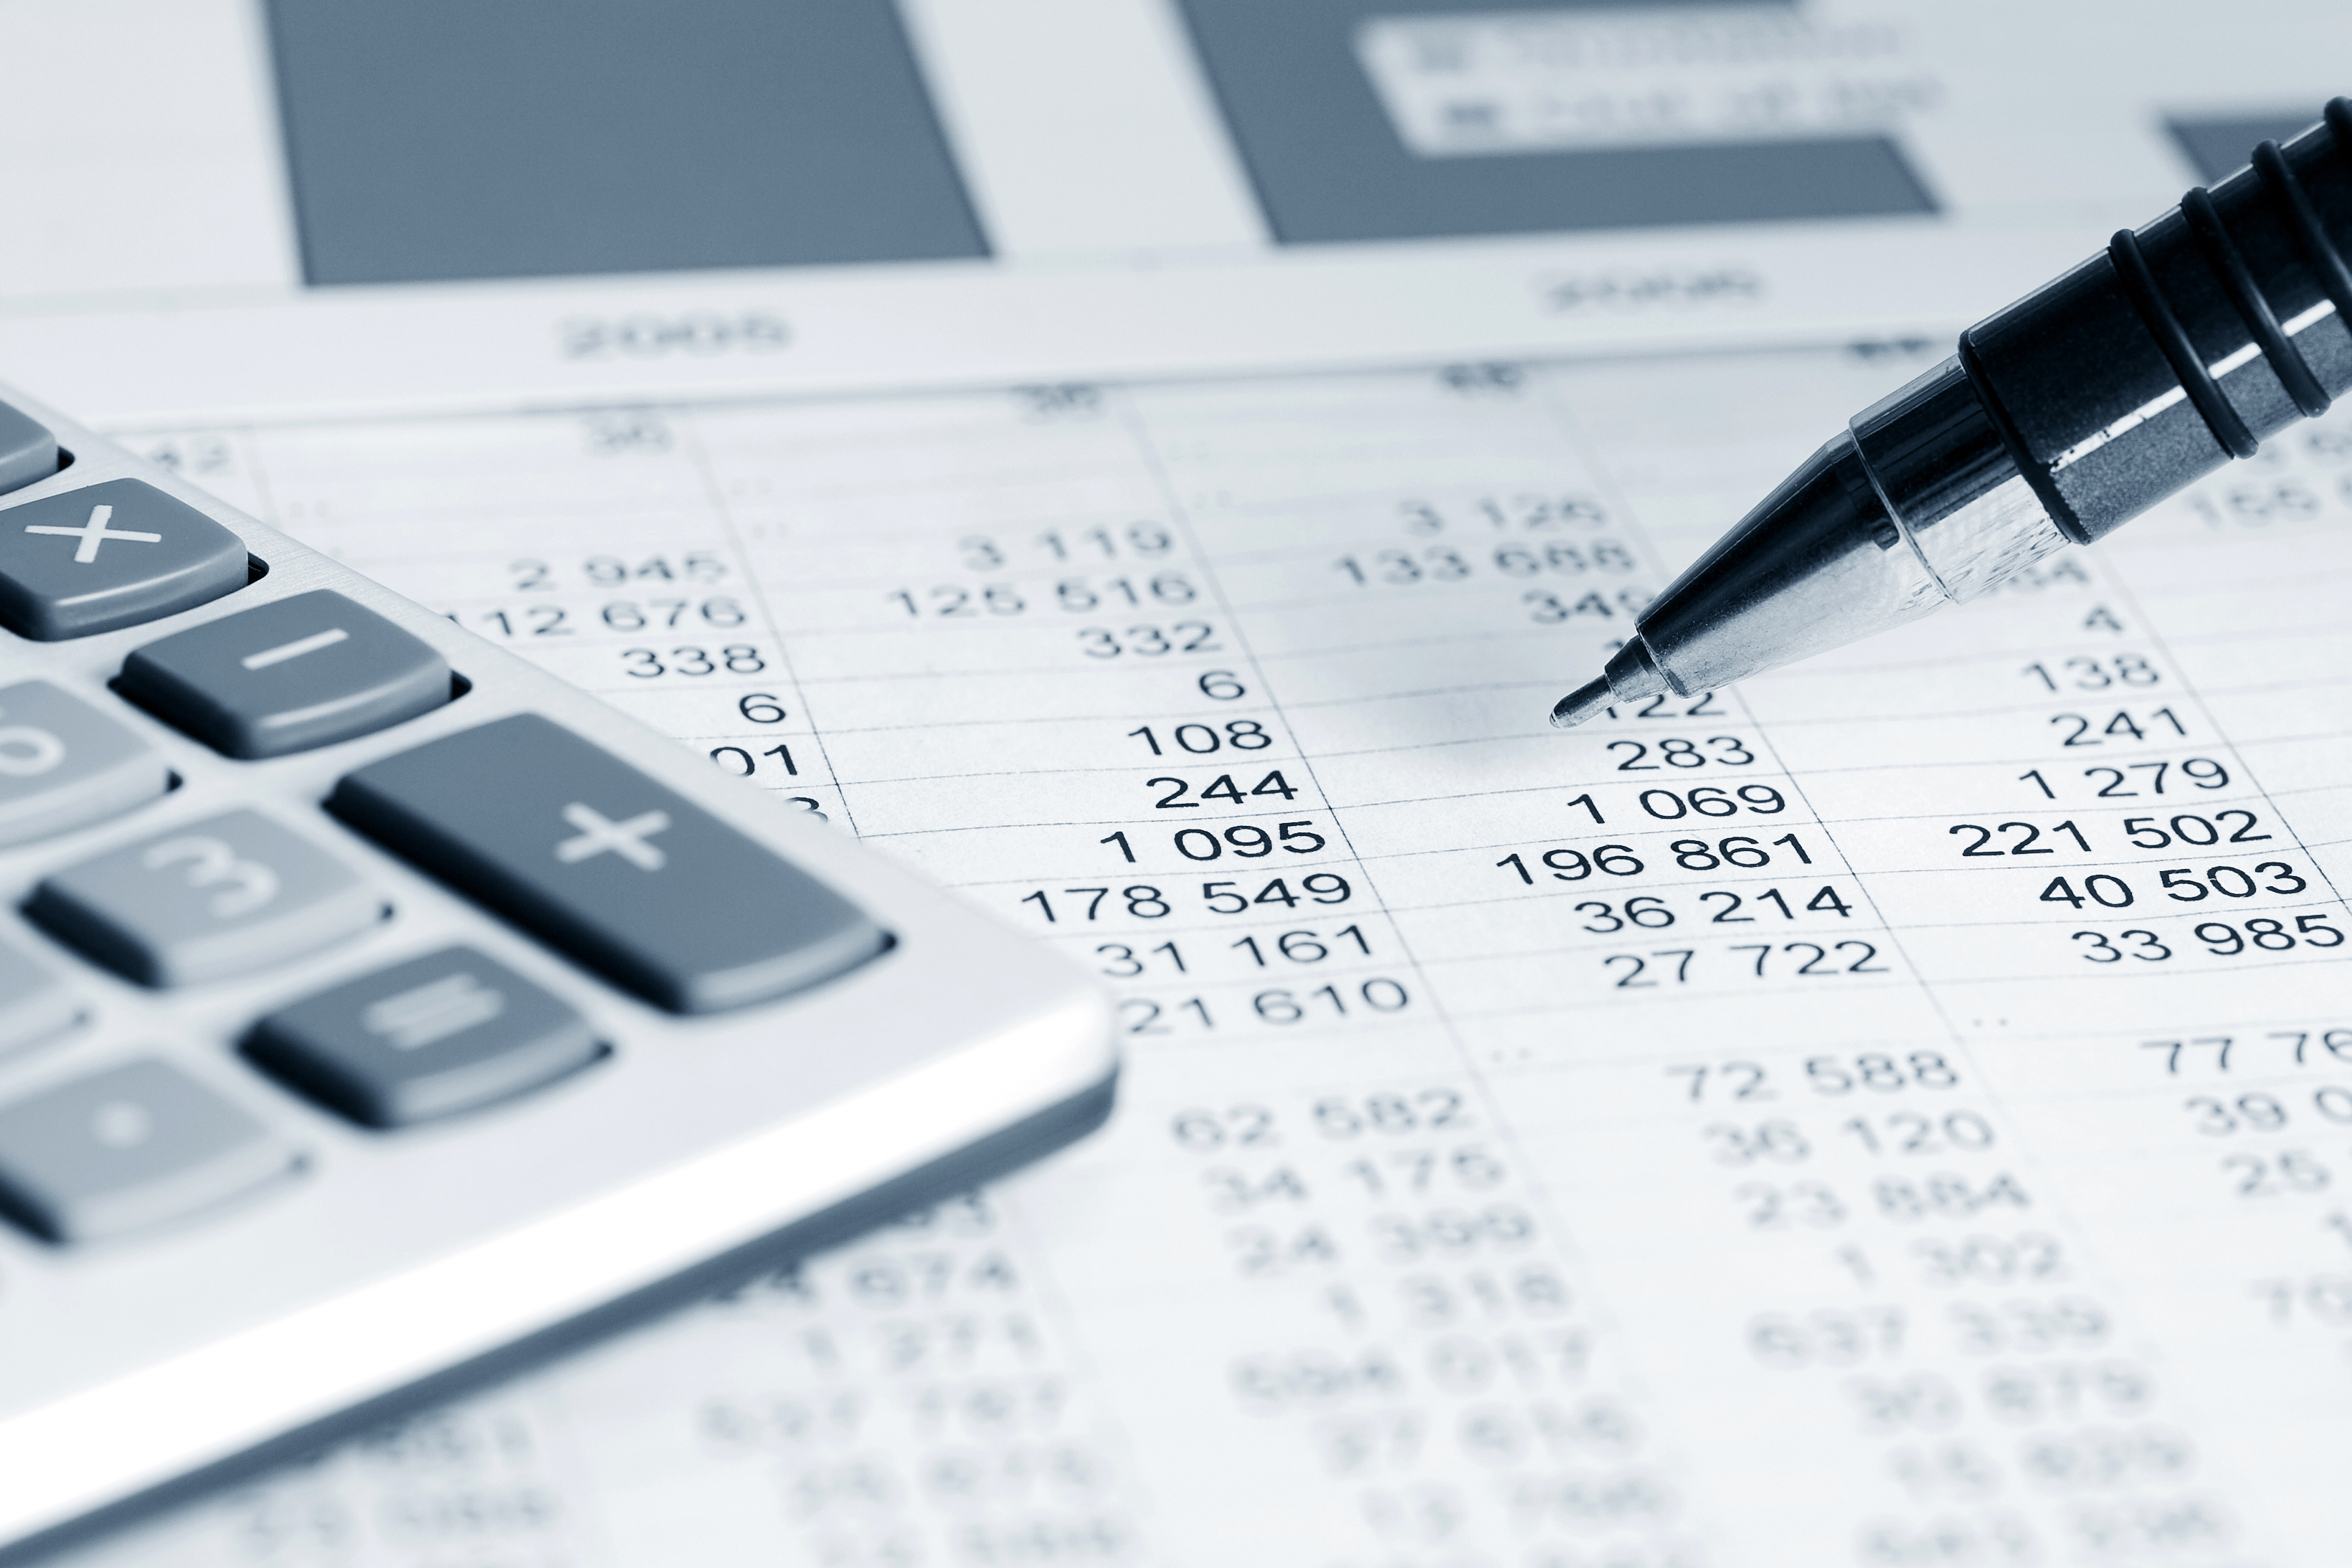 accounting wallpaper,calculator,office equipment,text,font,line